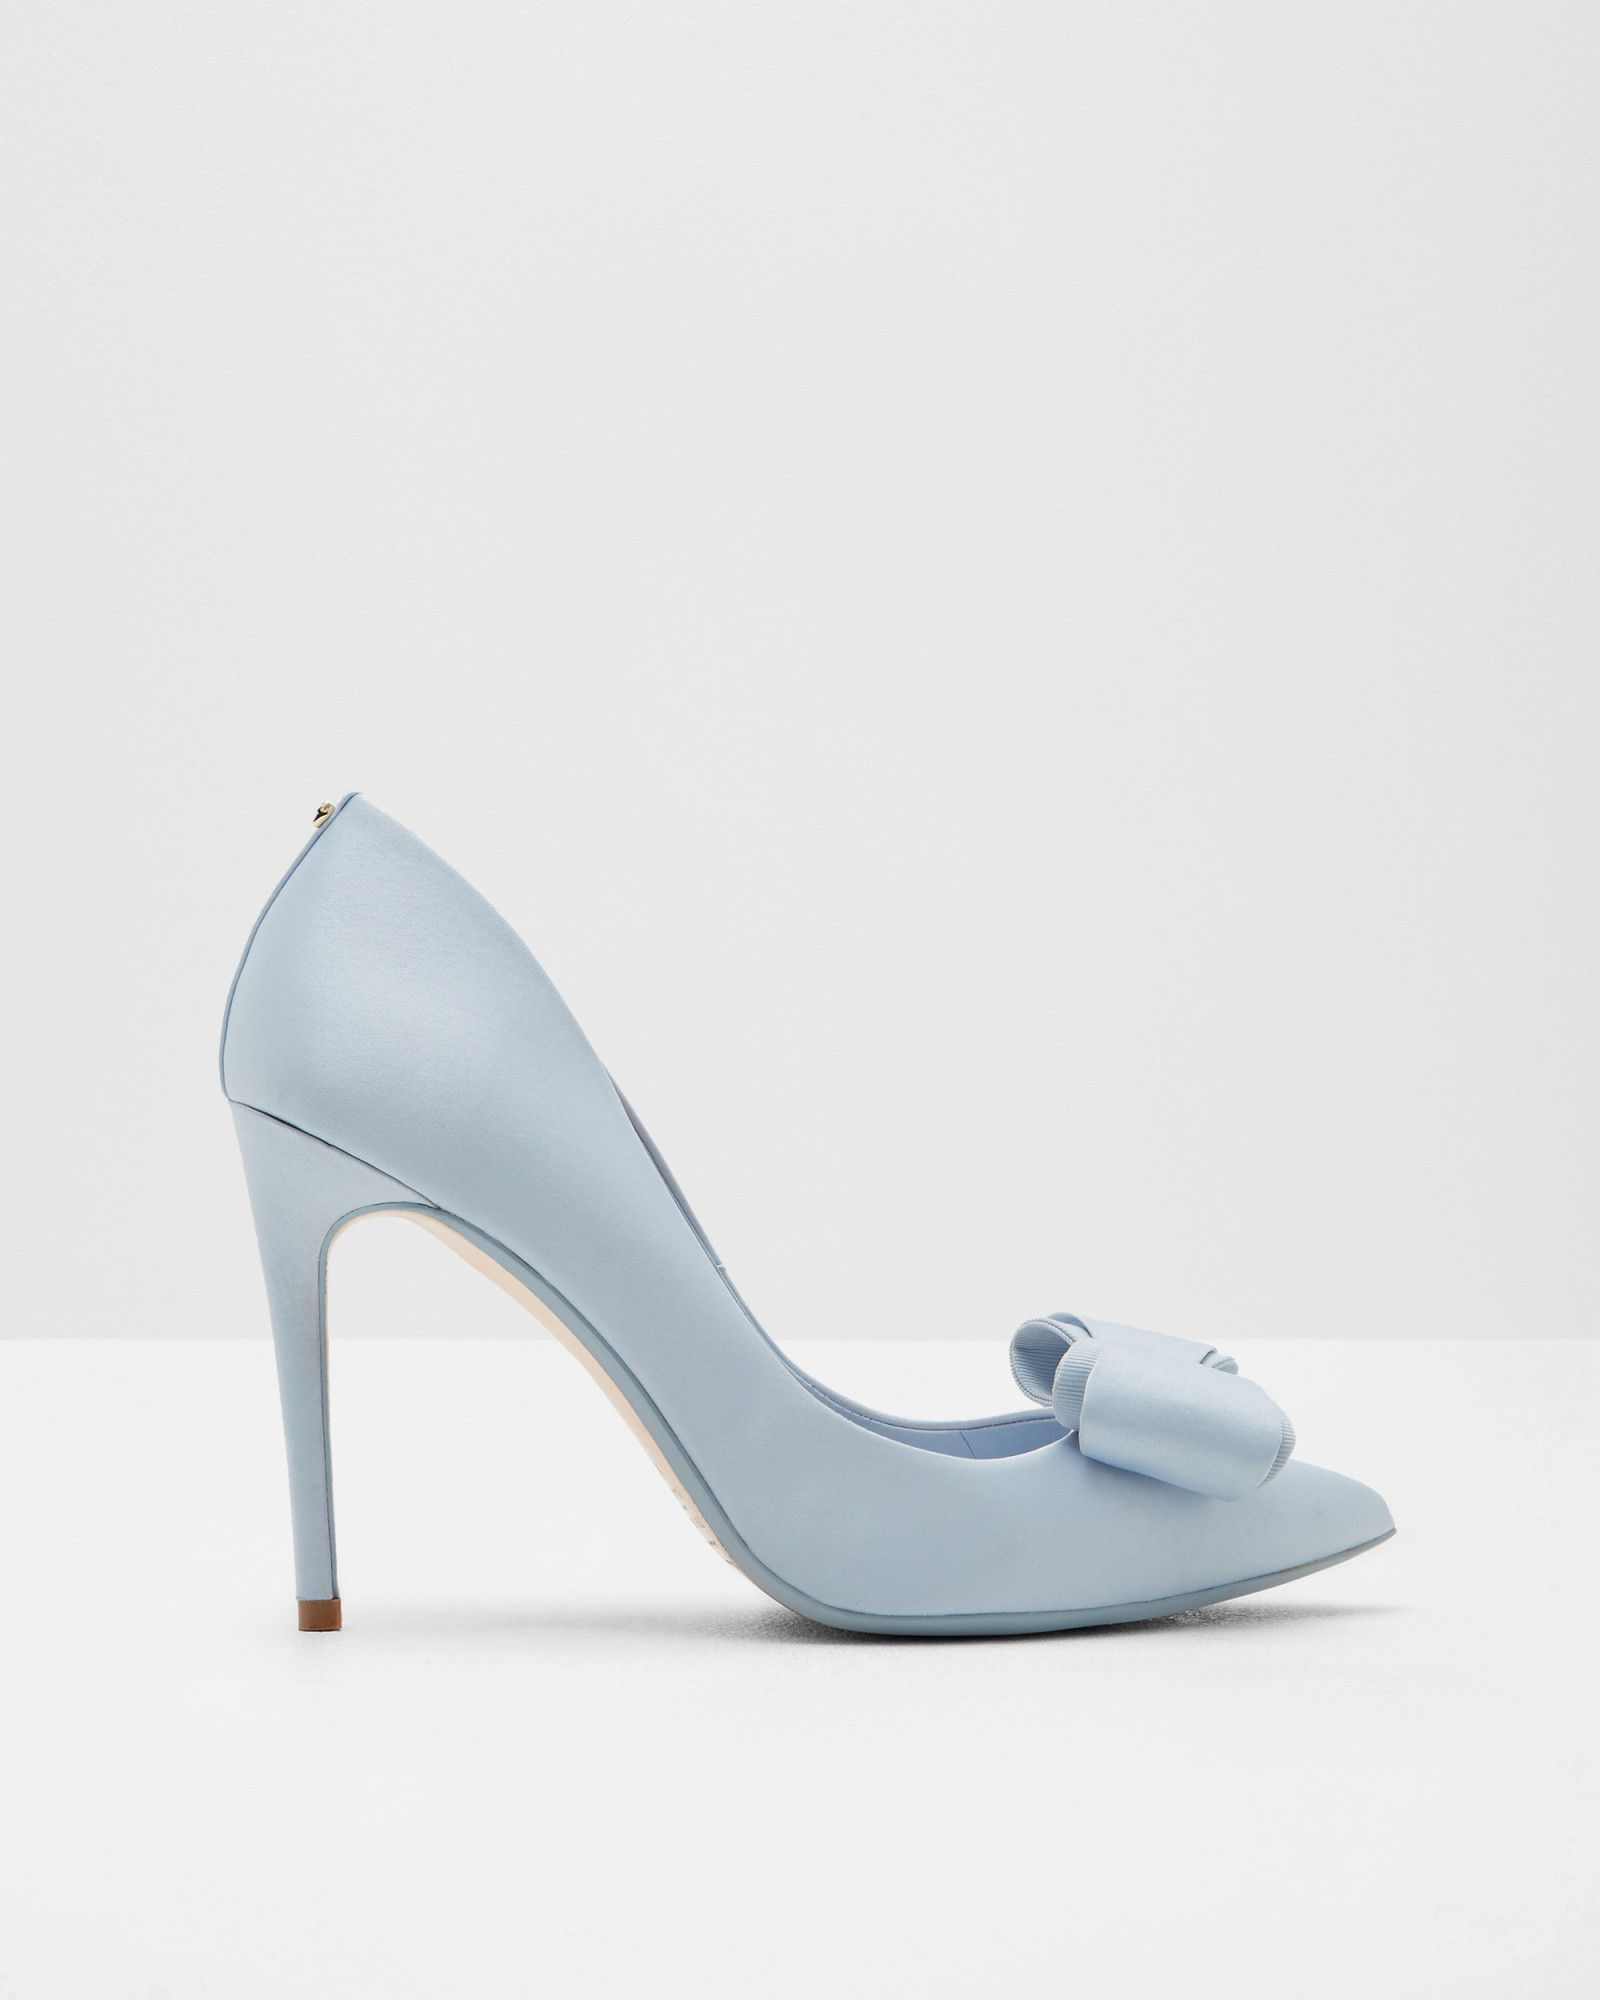 Azeline Blue Shoes, Ted Baker #blue #wedding #shoe